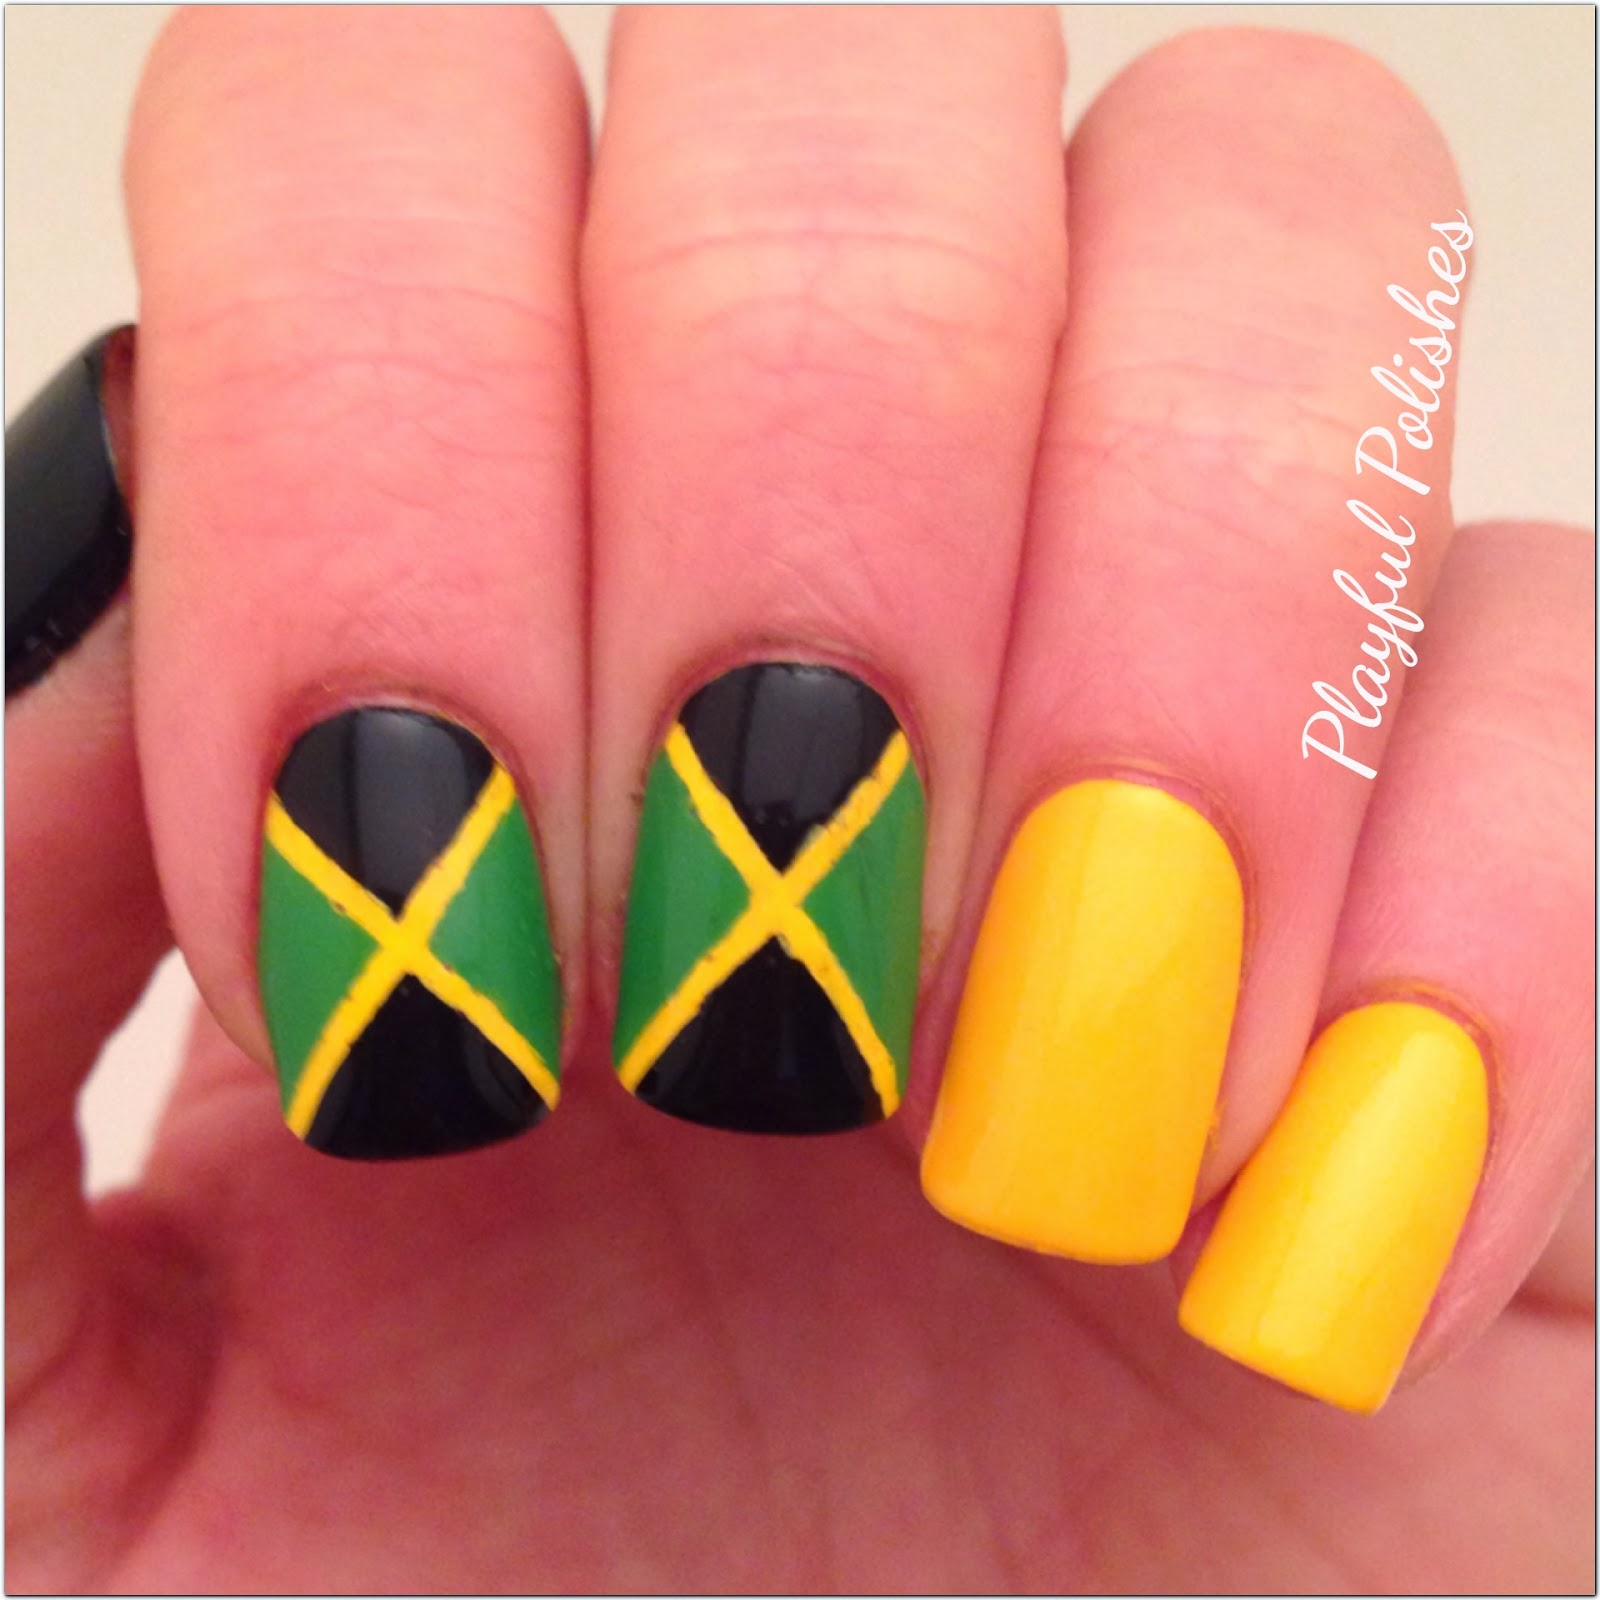 Playful Polishes: 31 DAY NAIL ART CHALLENGE: INSPIRED BY A FLAG